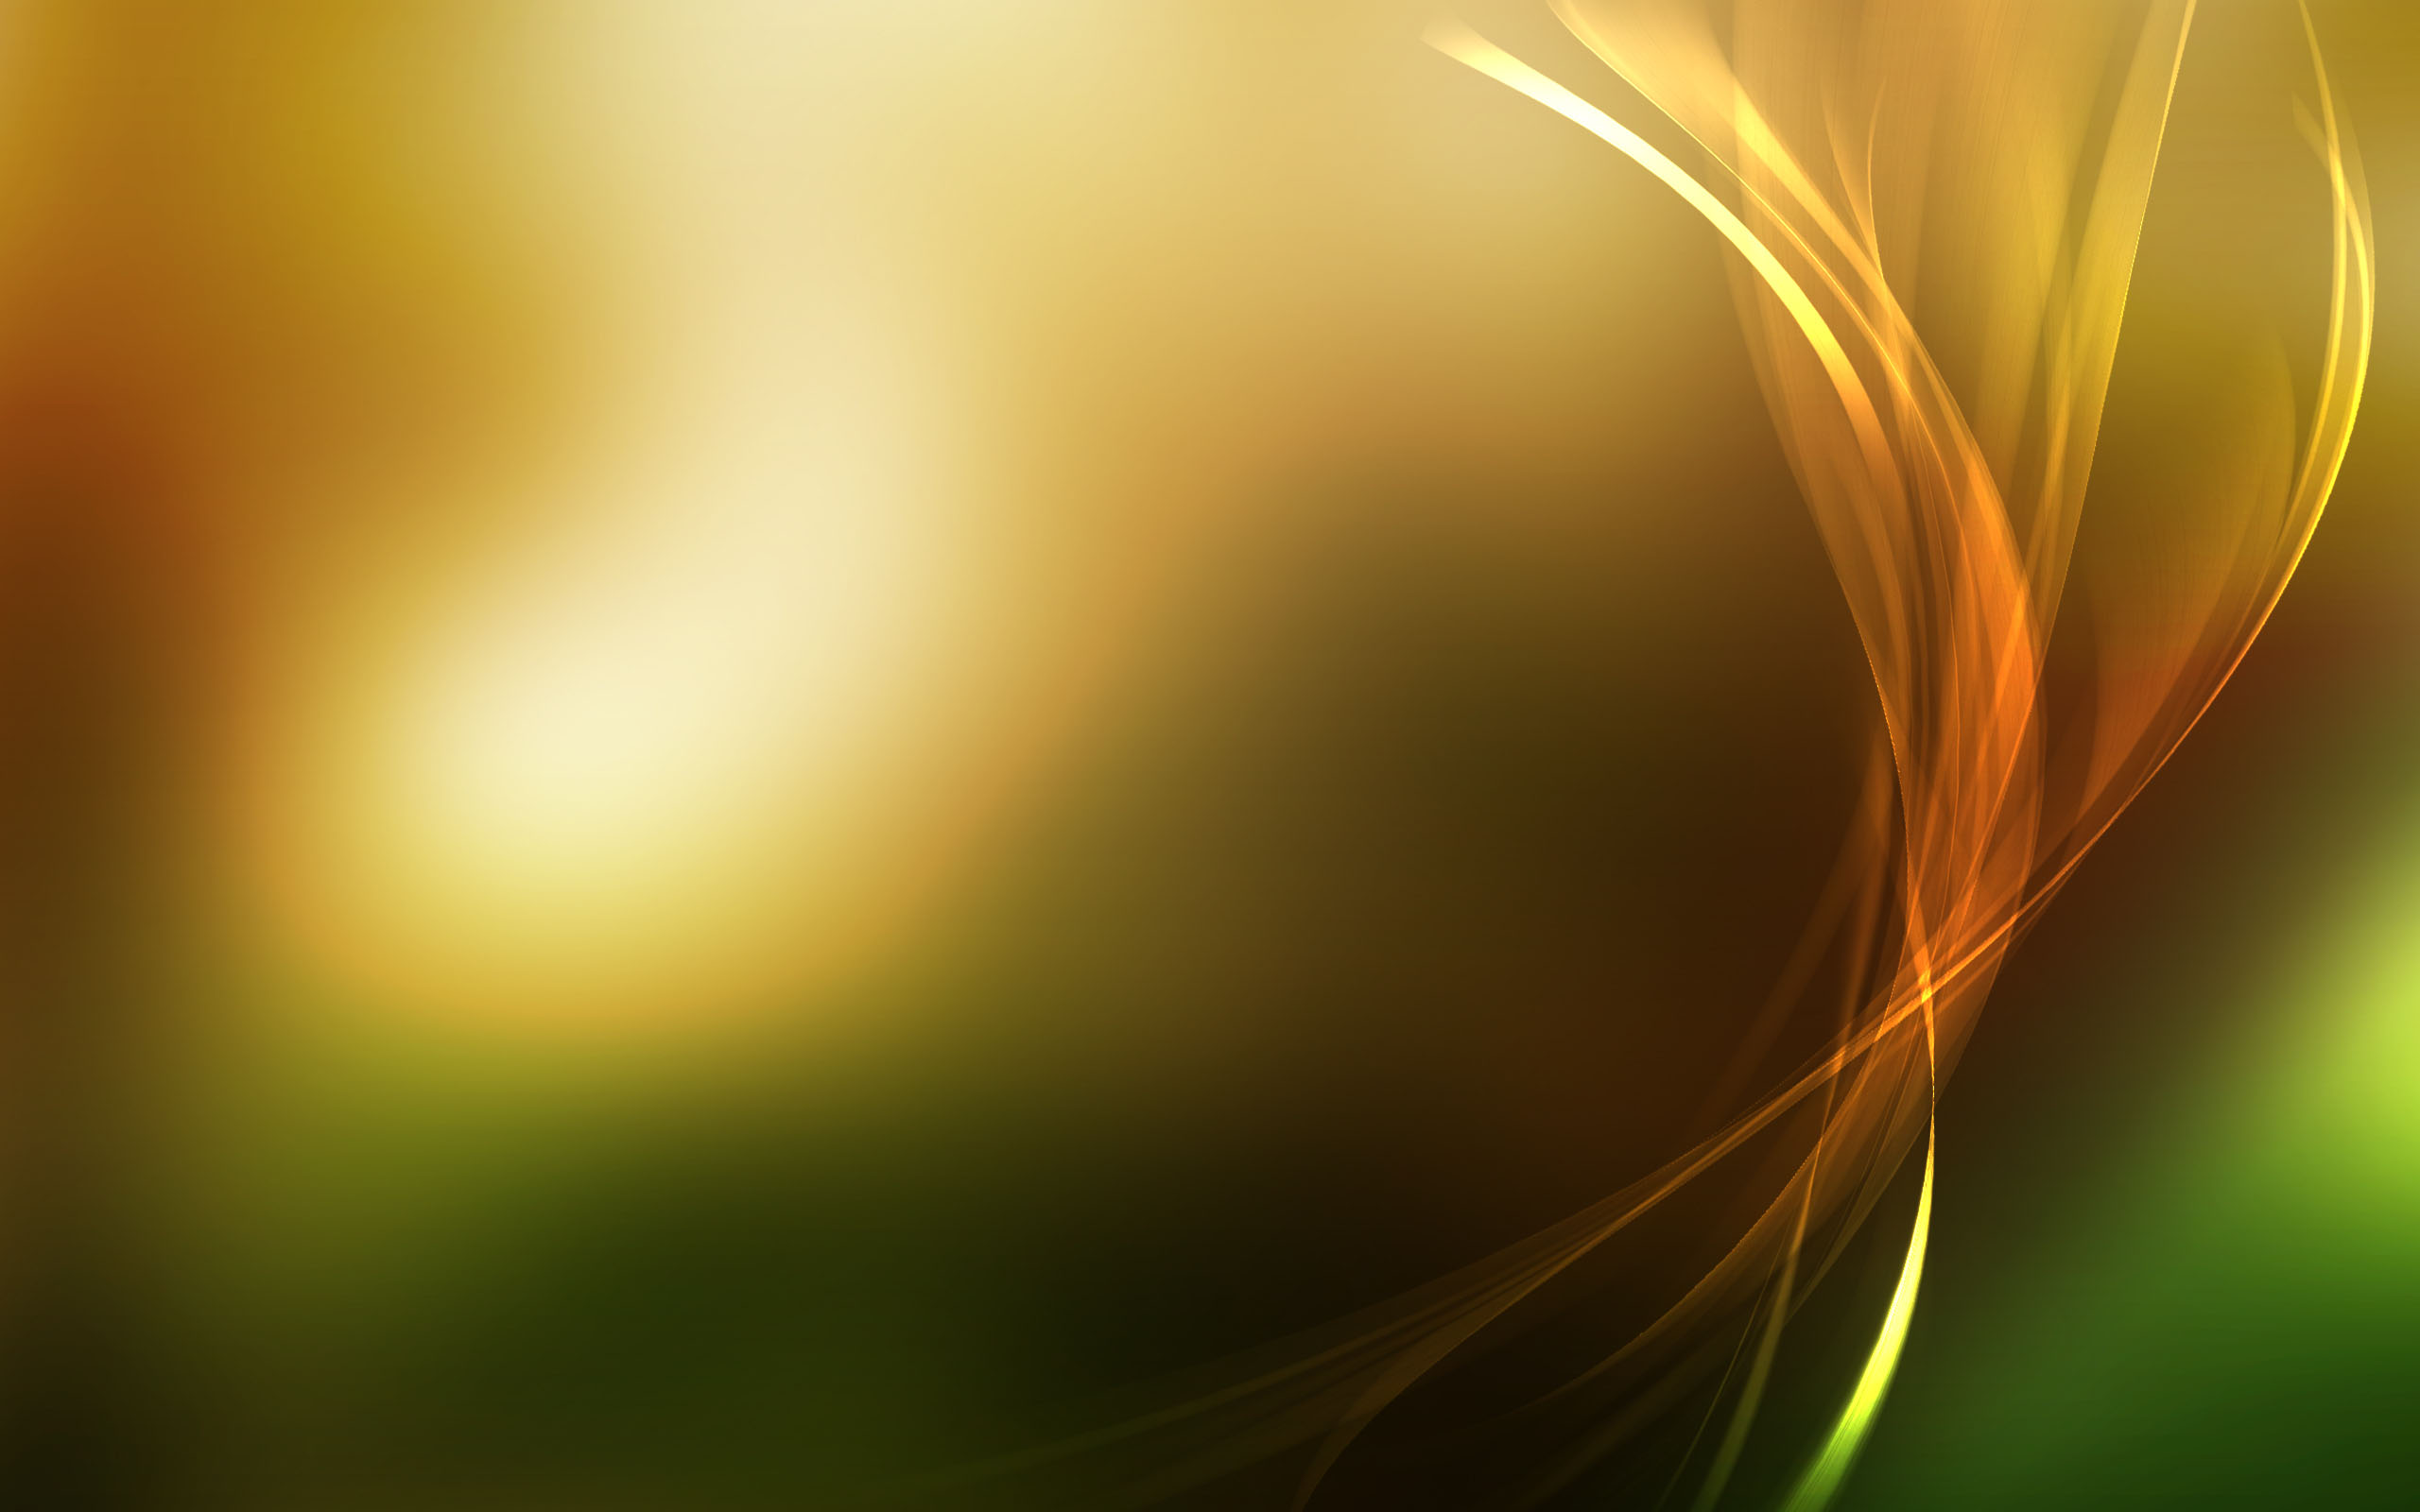 Abstract Wallpaper 2560×1600 Free Gold